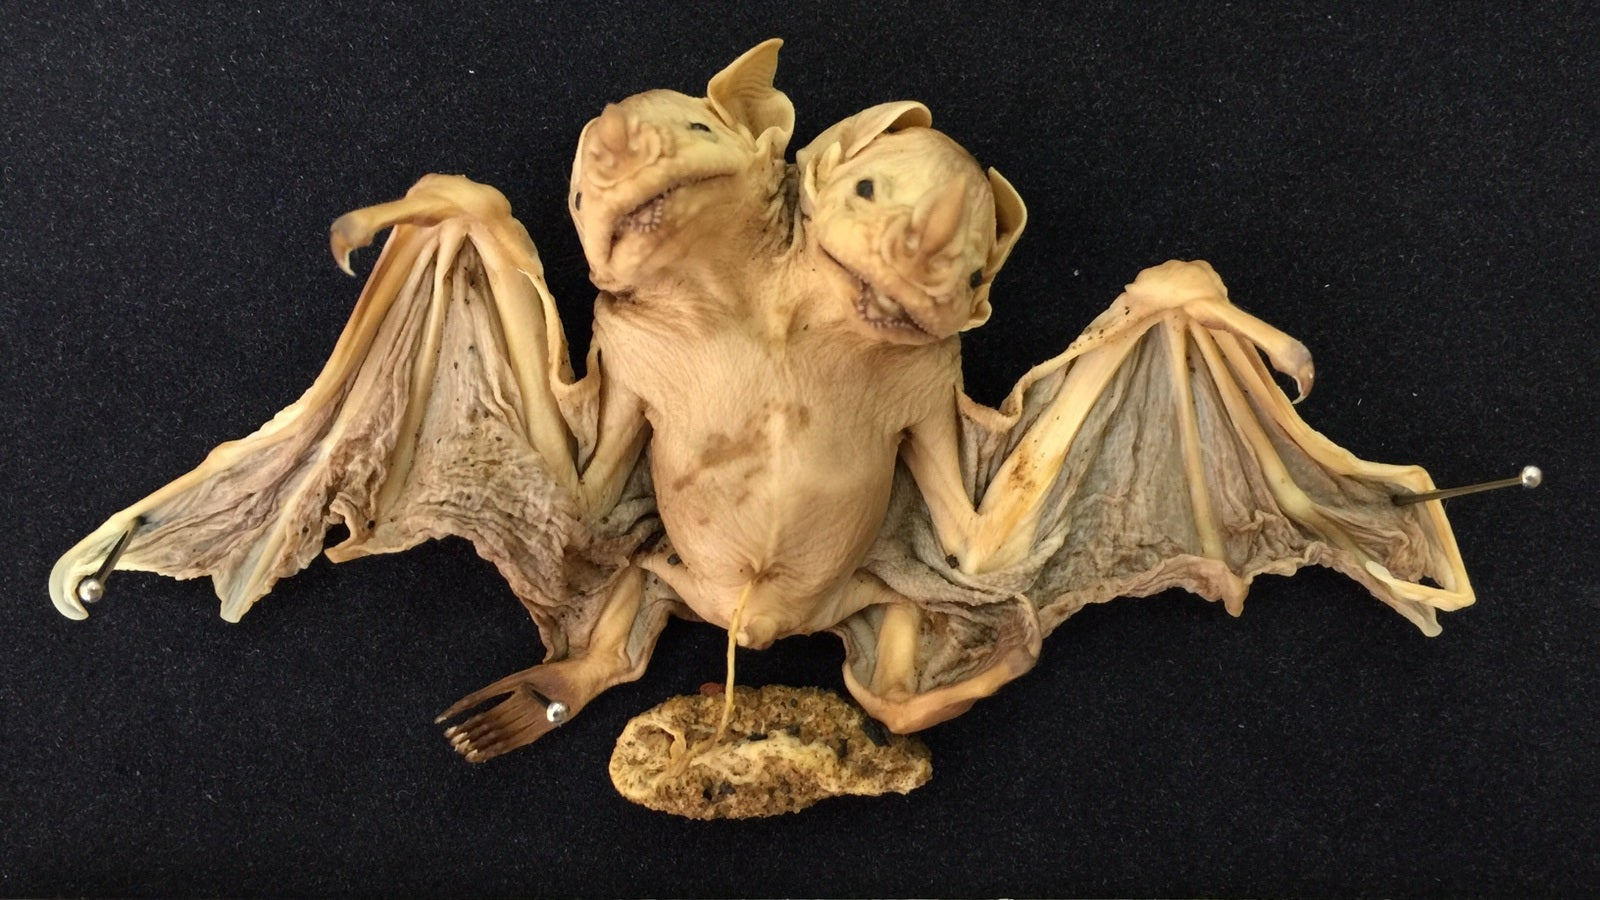 Two-Headed Bat Found In Brazil Is The Stuff Of Nightmares